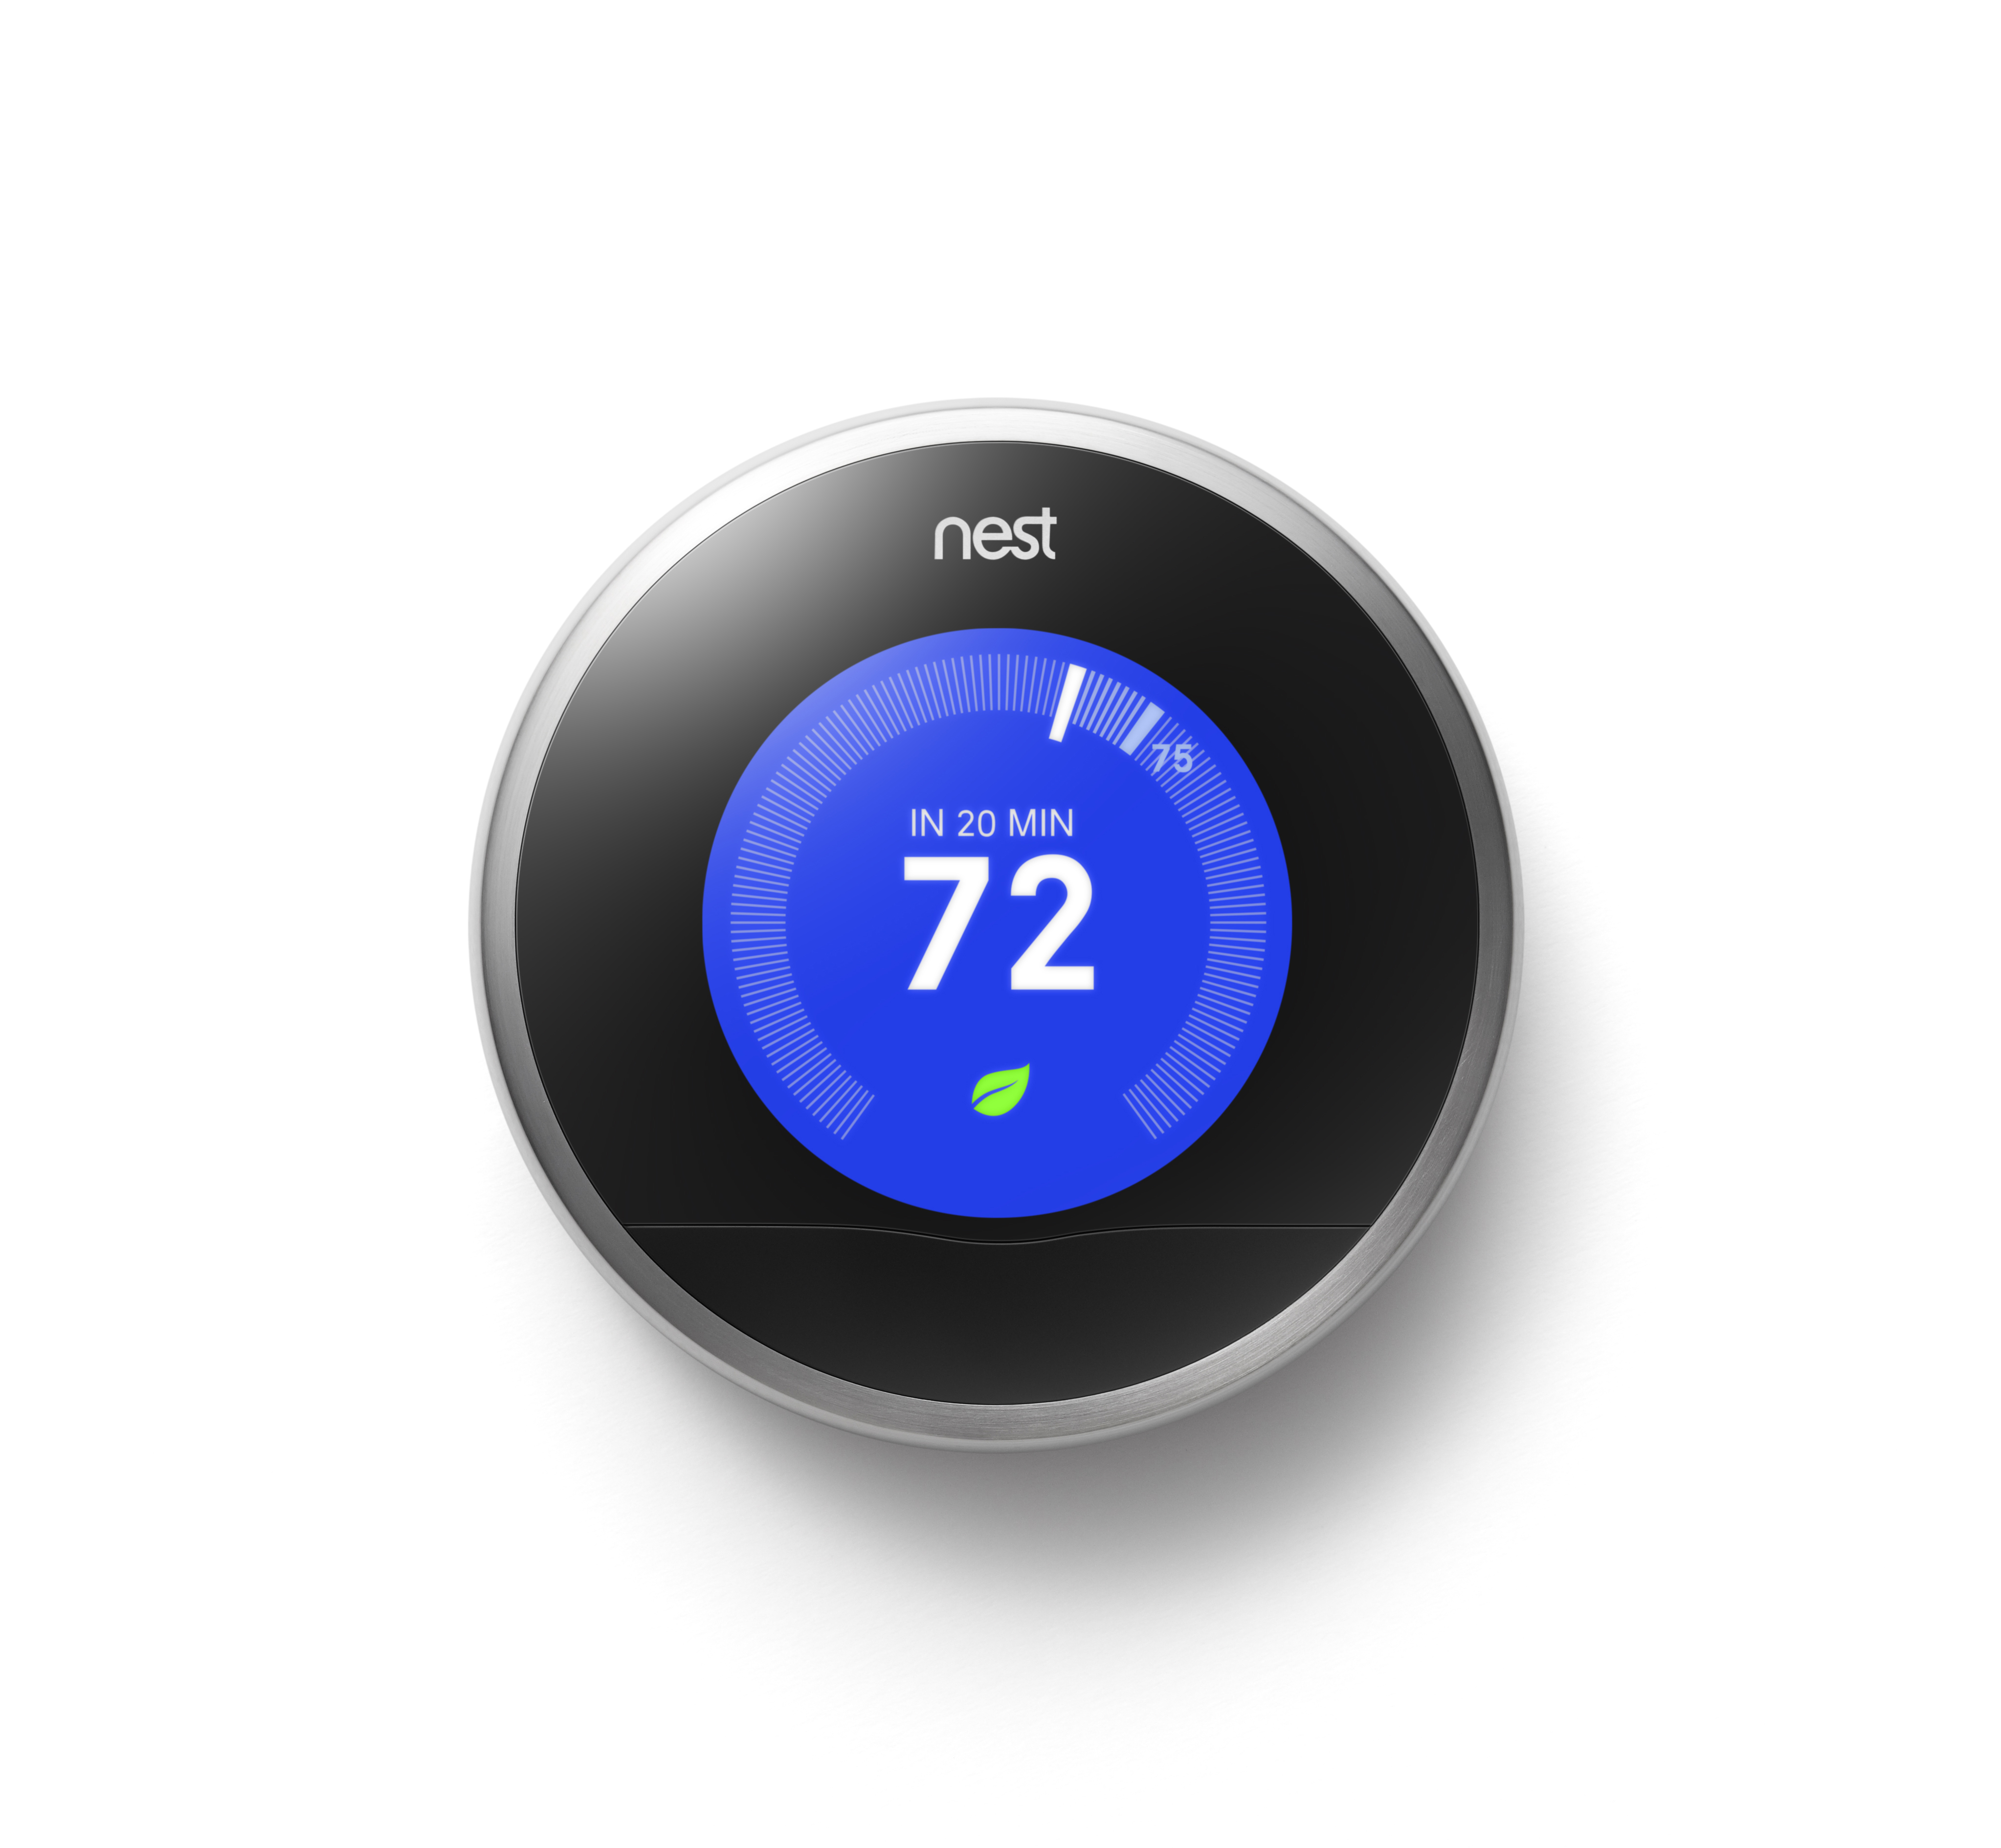 What my thermostat taught me about experiential design